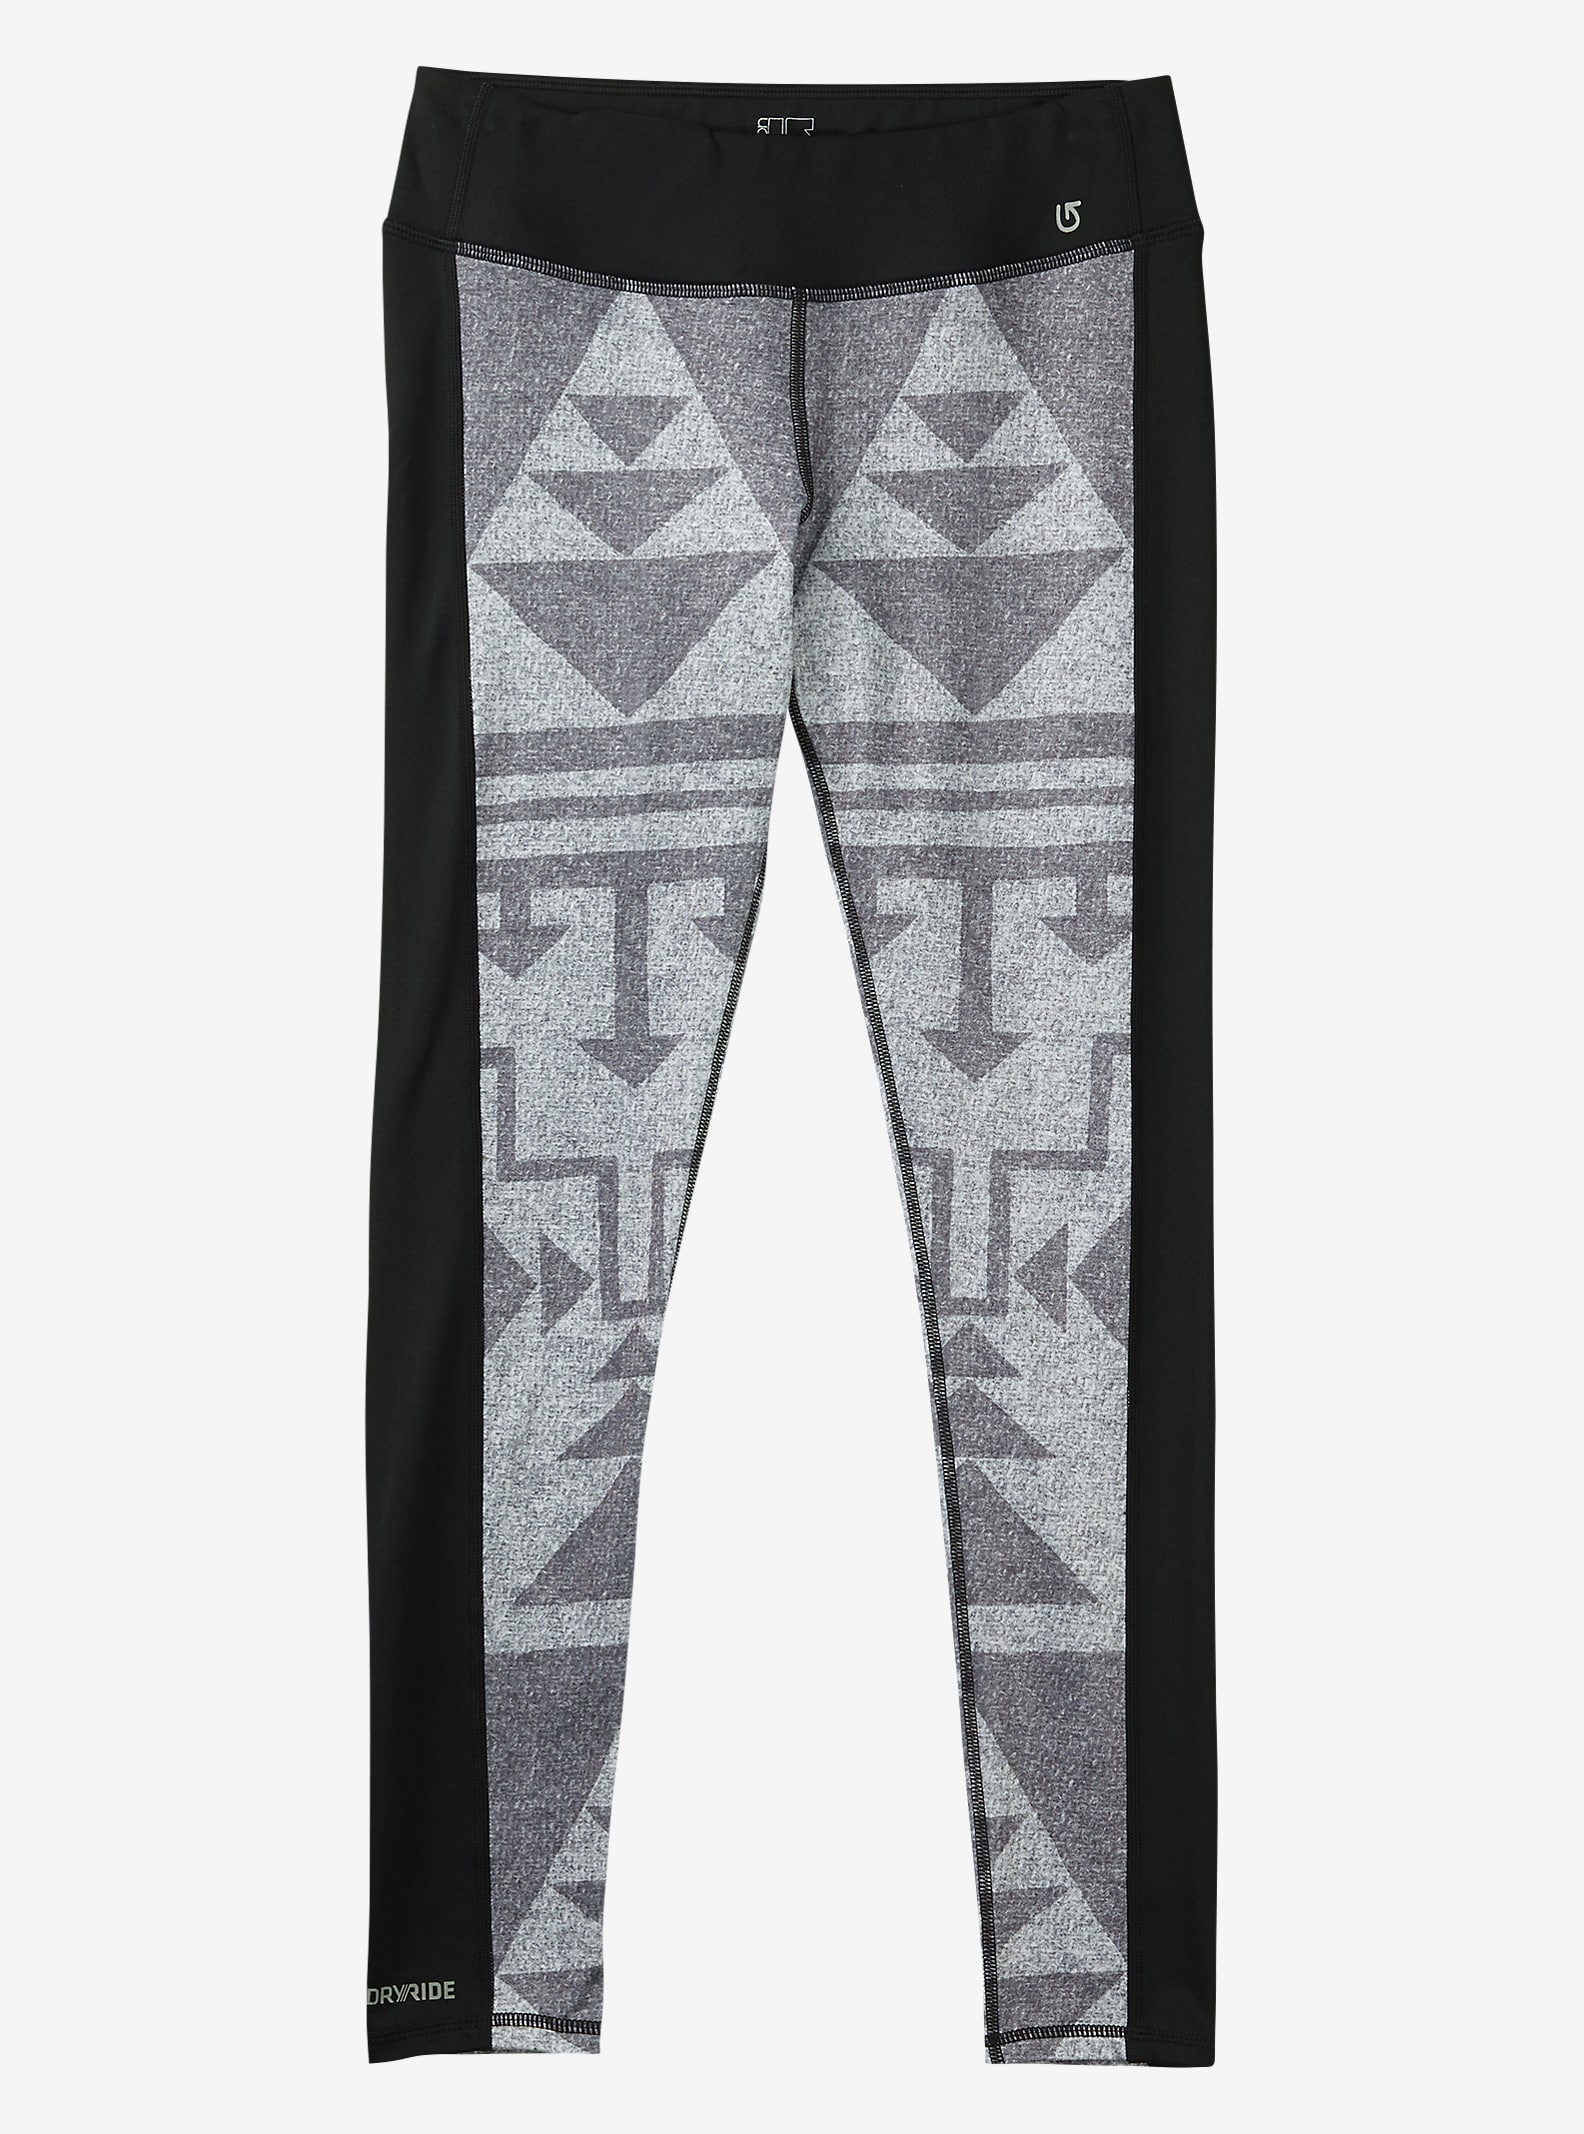 Burton Women's Active Legging shown in Neu Nordic